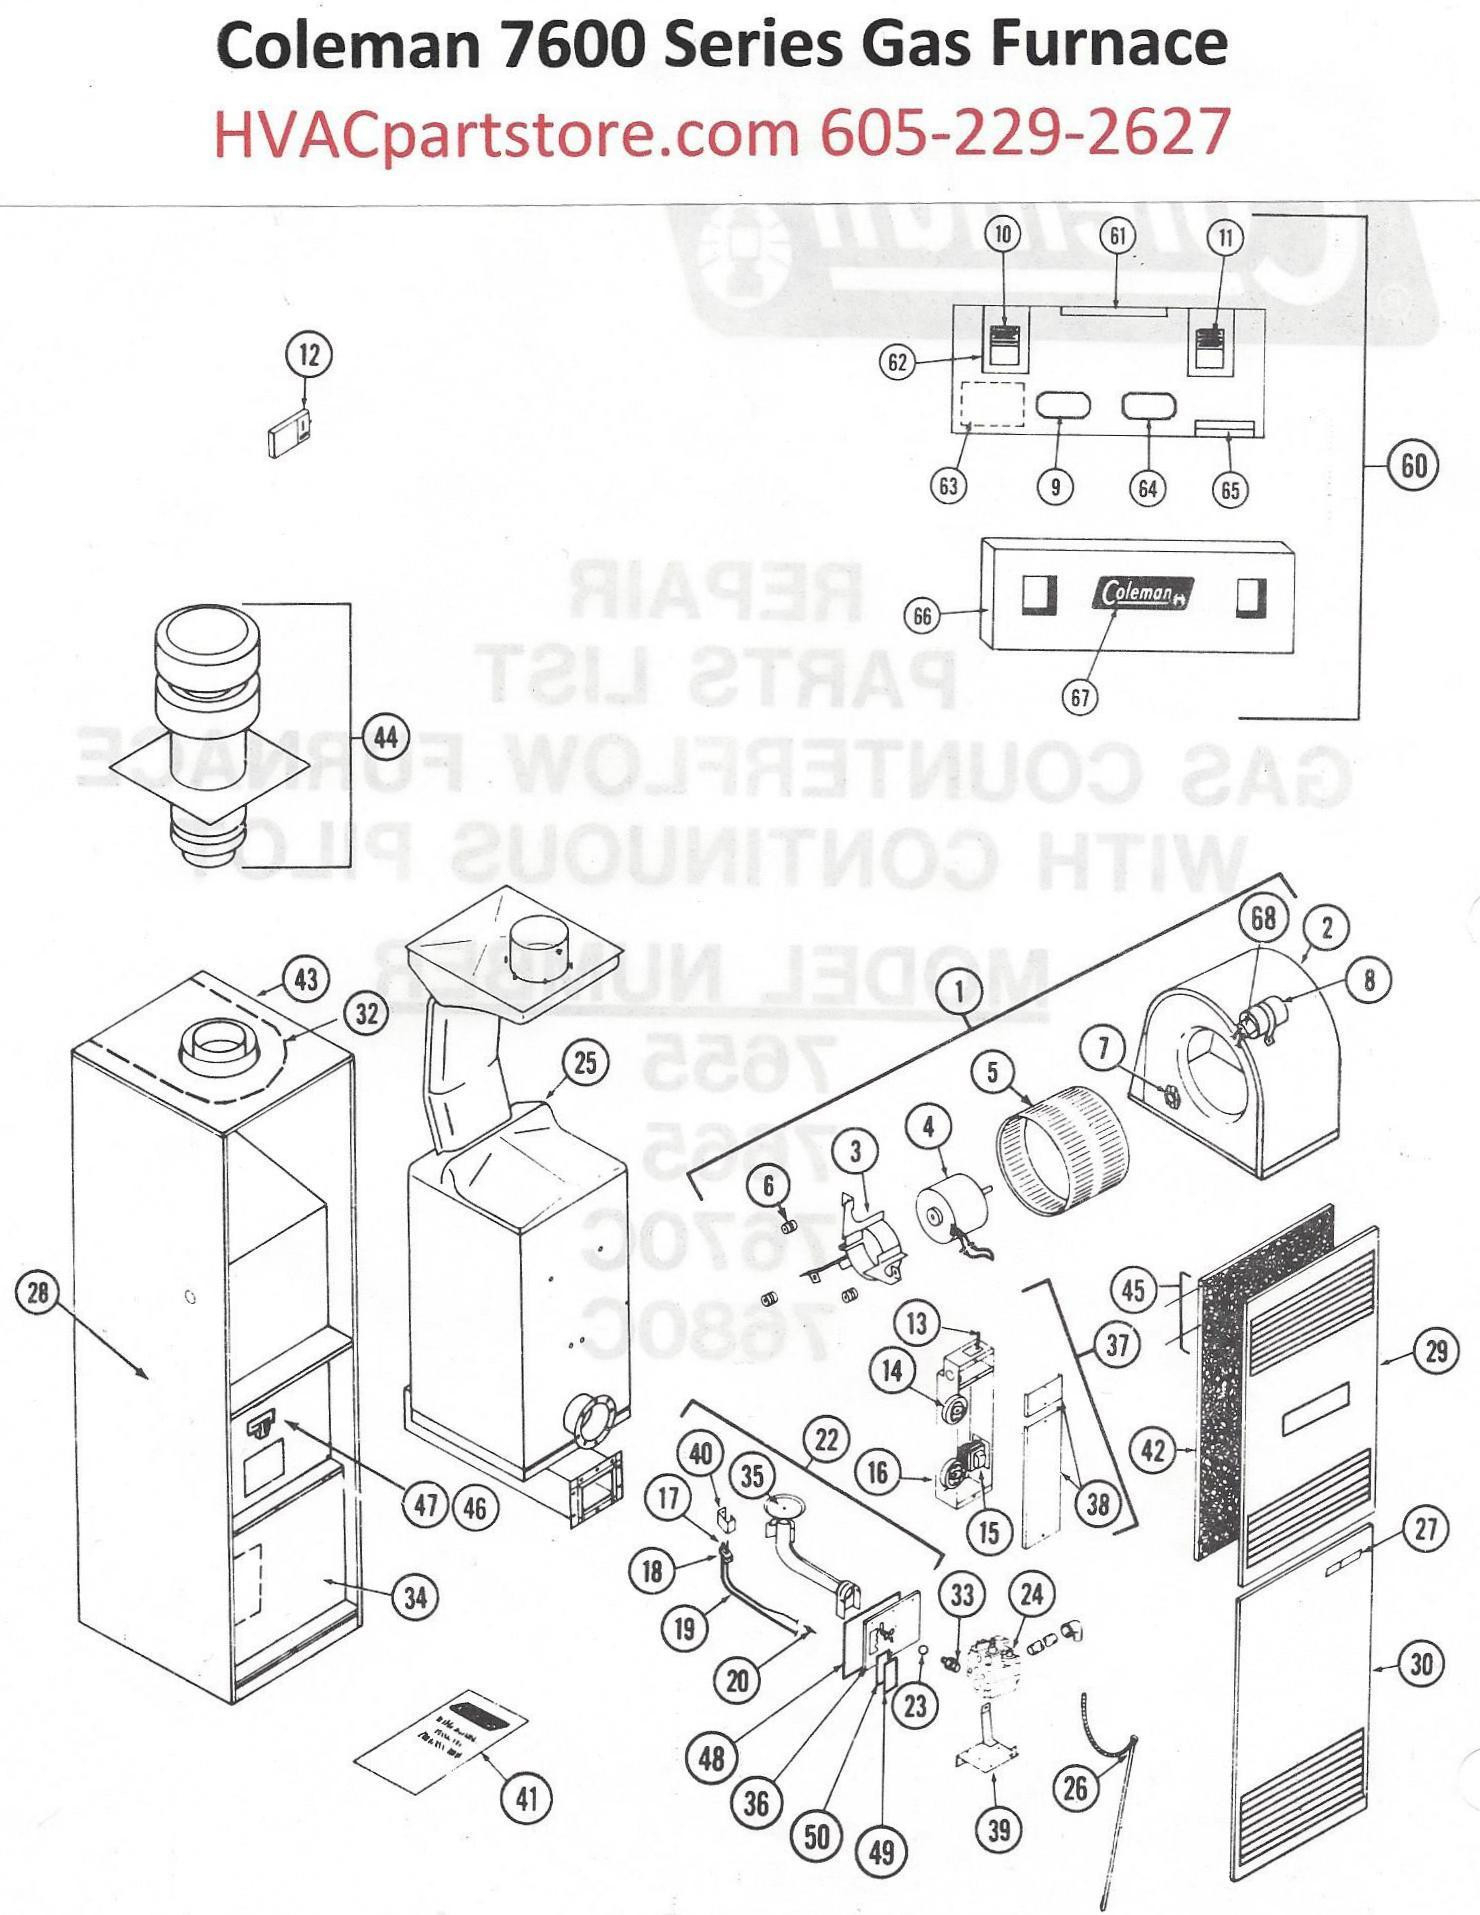 Hardy H2 Furnace Wiring Diagram - Wiring Diagrams on